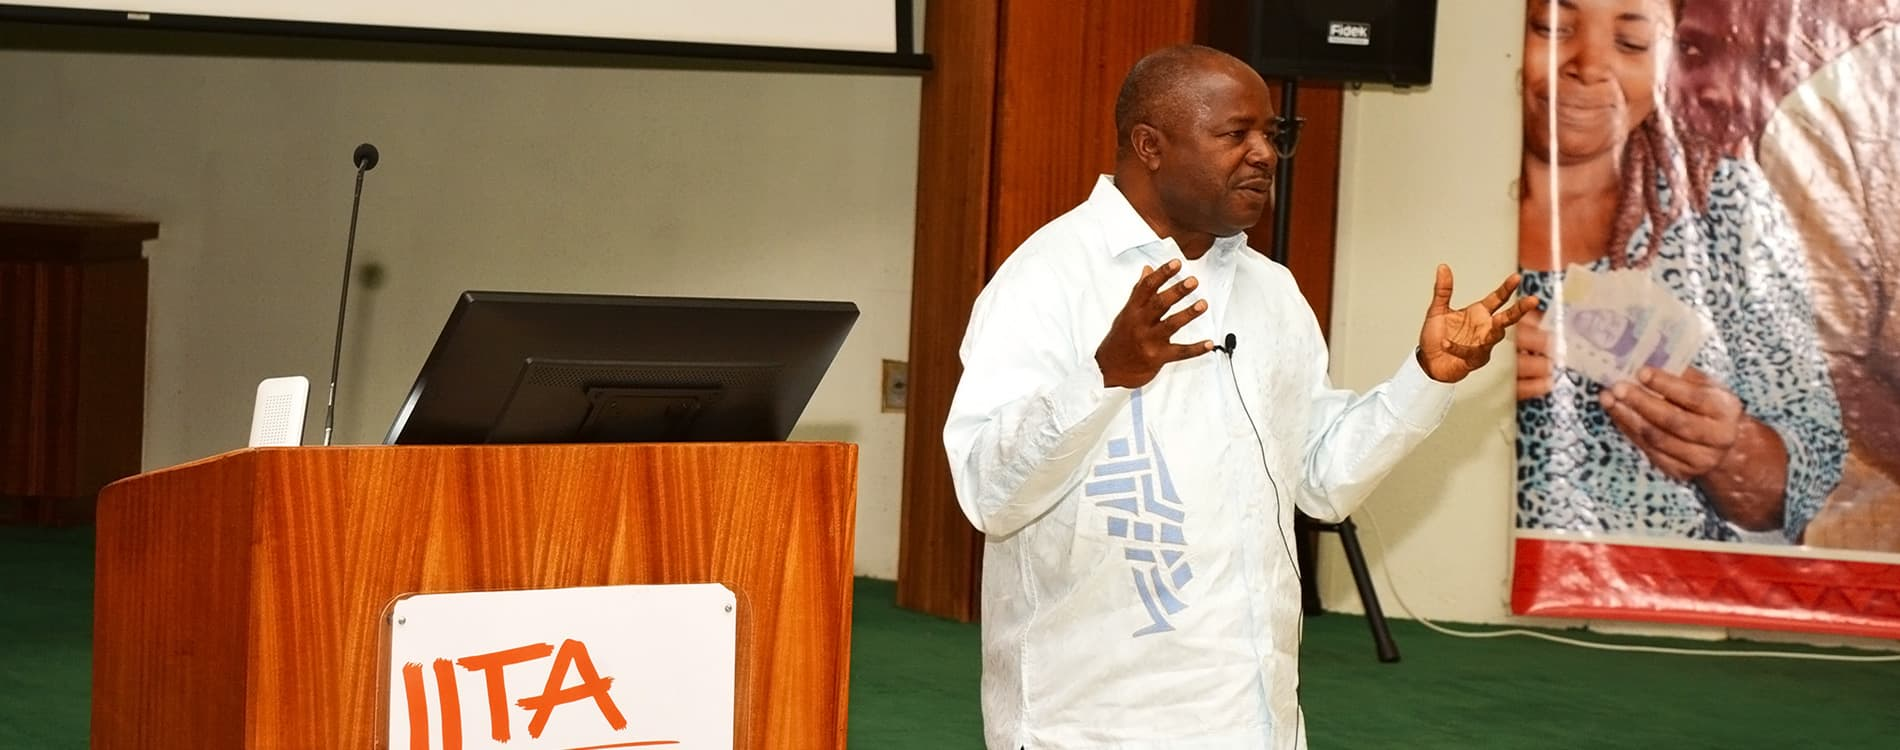 Combating COVID-19-induced shortfalls: IITA reveals strategy to strengthen financial health and secure research goals